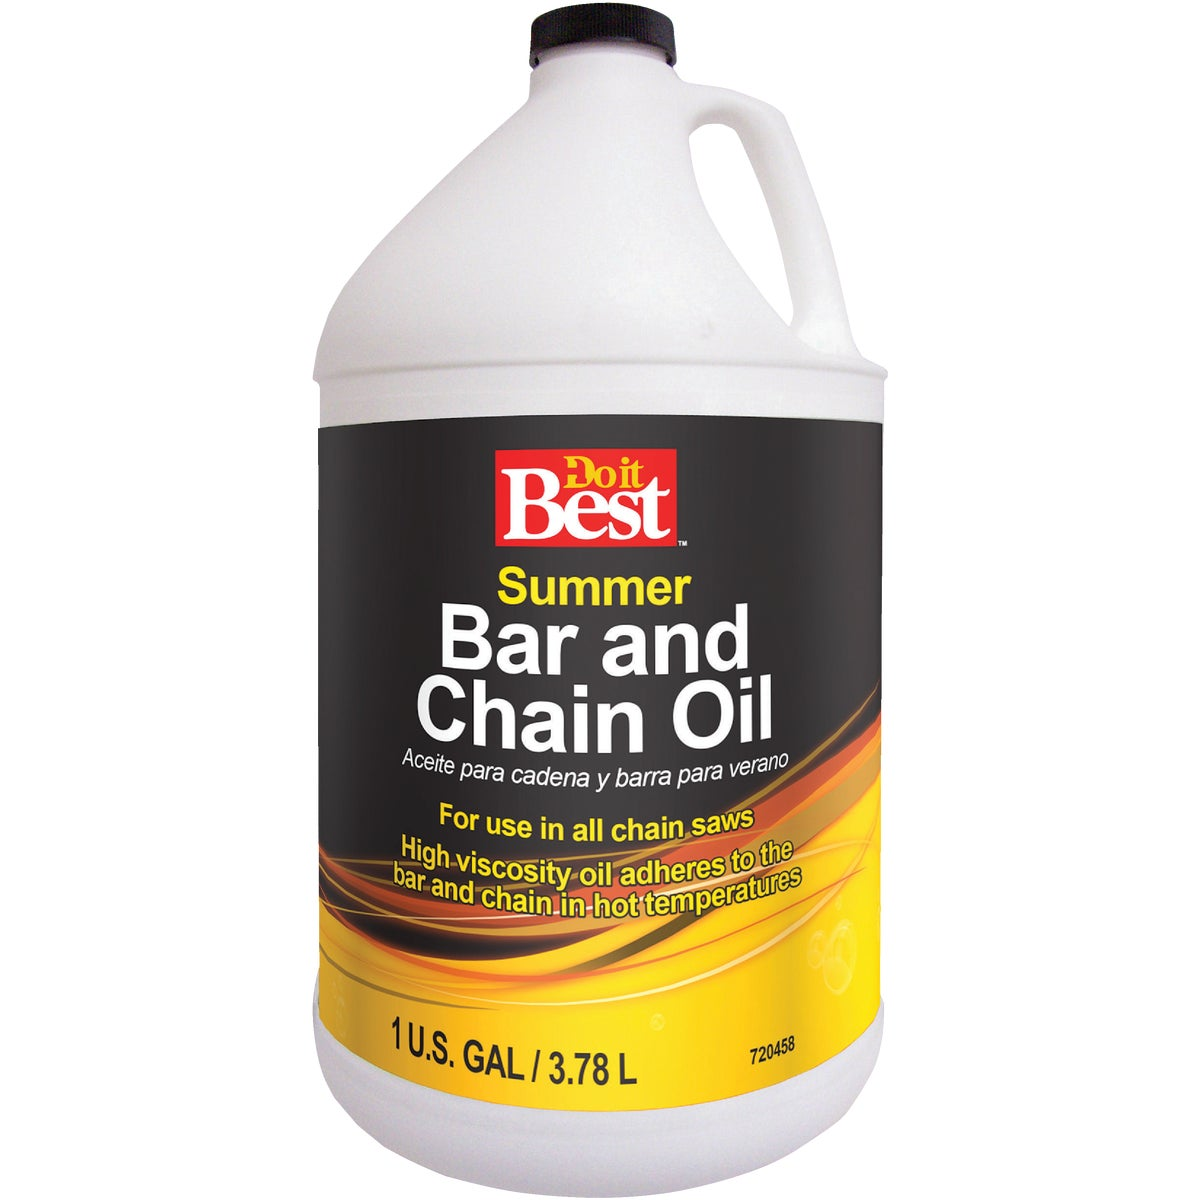 GL SUMMER BAR/CHAIN OIL - 720458 by Warren Oil Co Inc